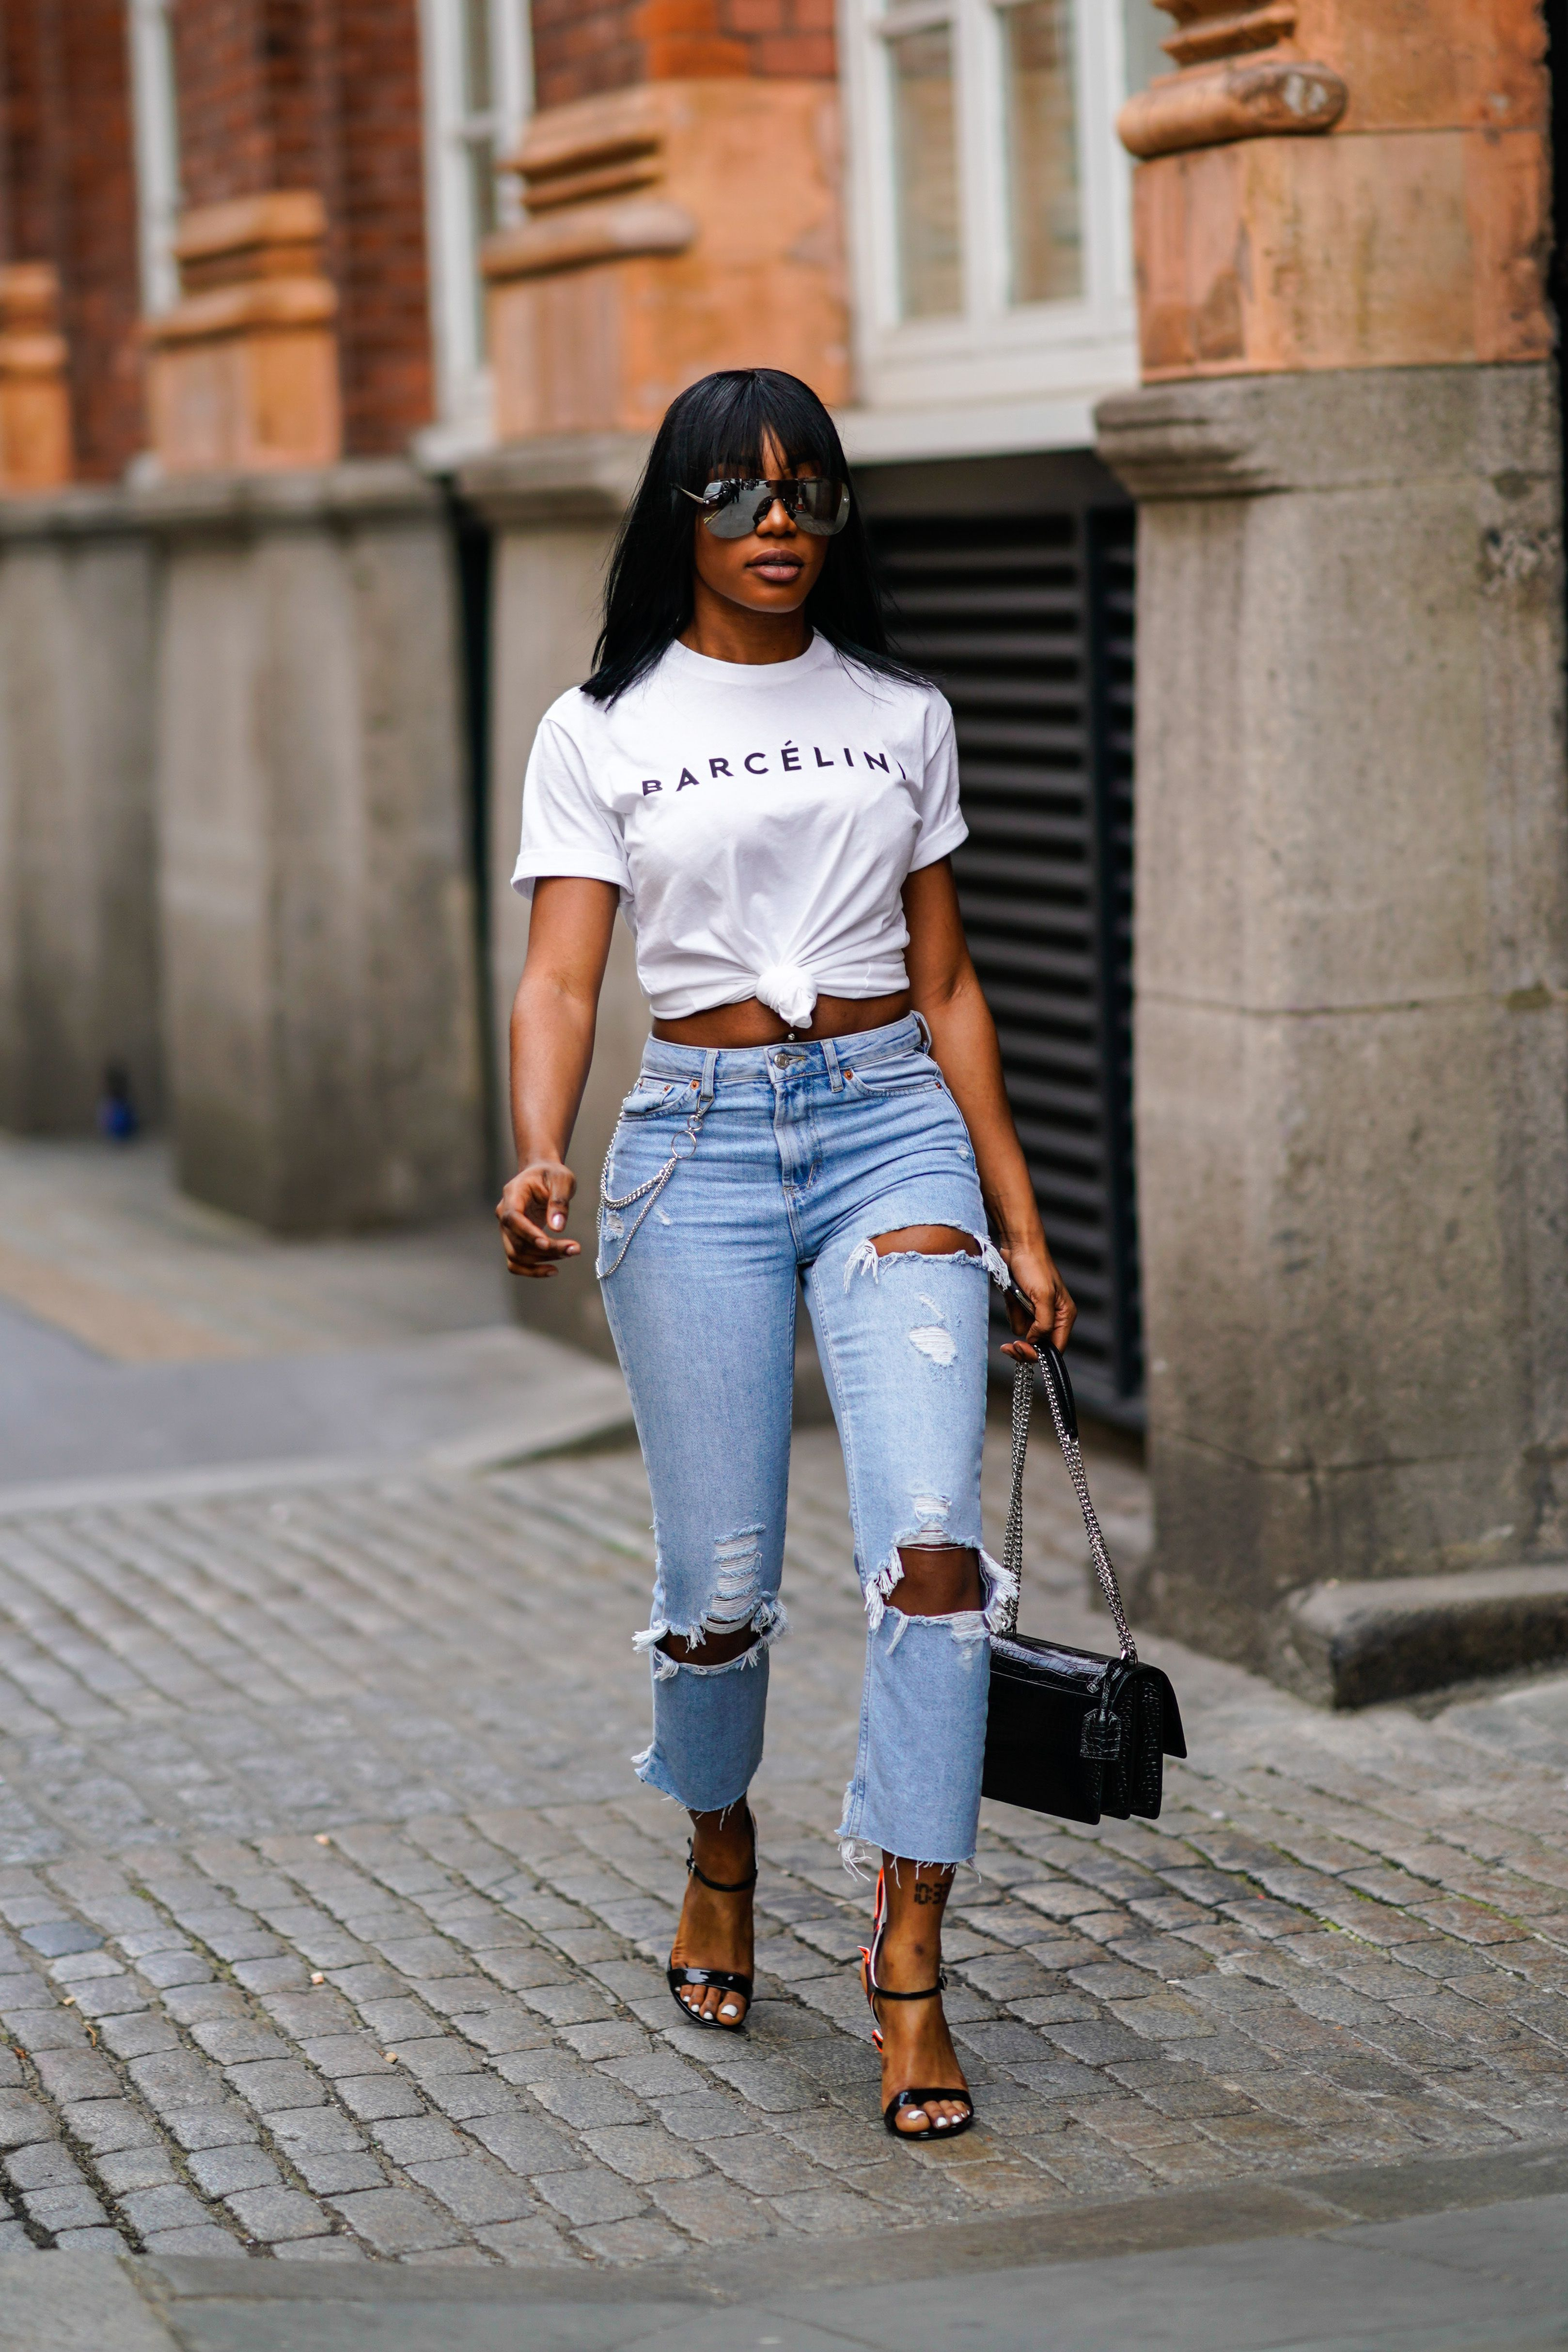 cd2eb9dd218 How to Dress Up a T-Shirt and Jeans to Look More Chic